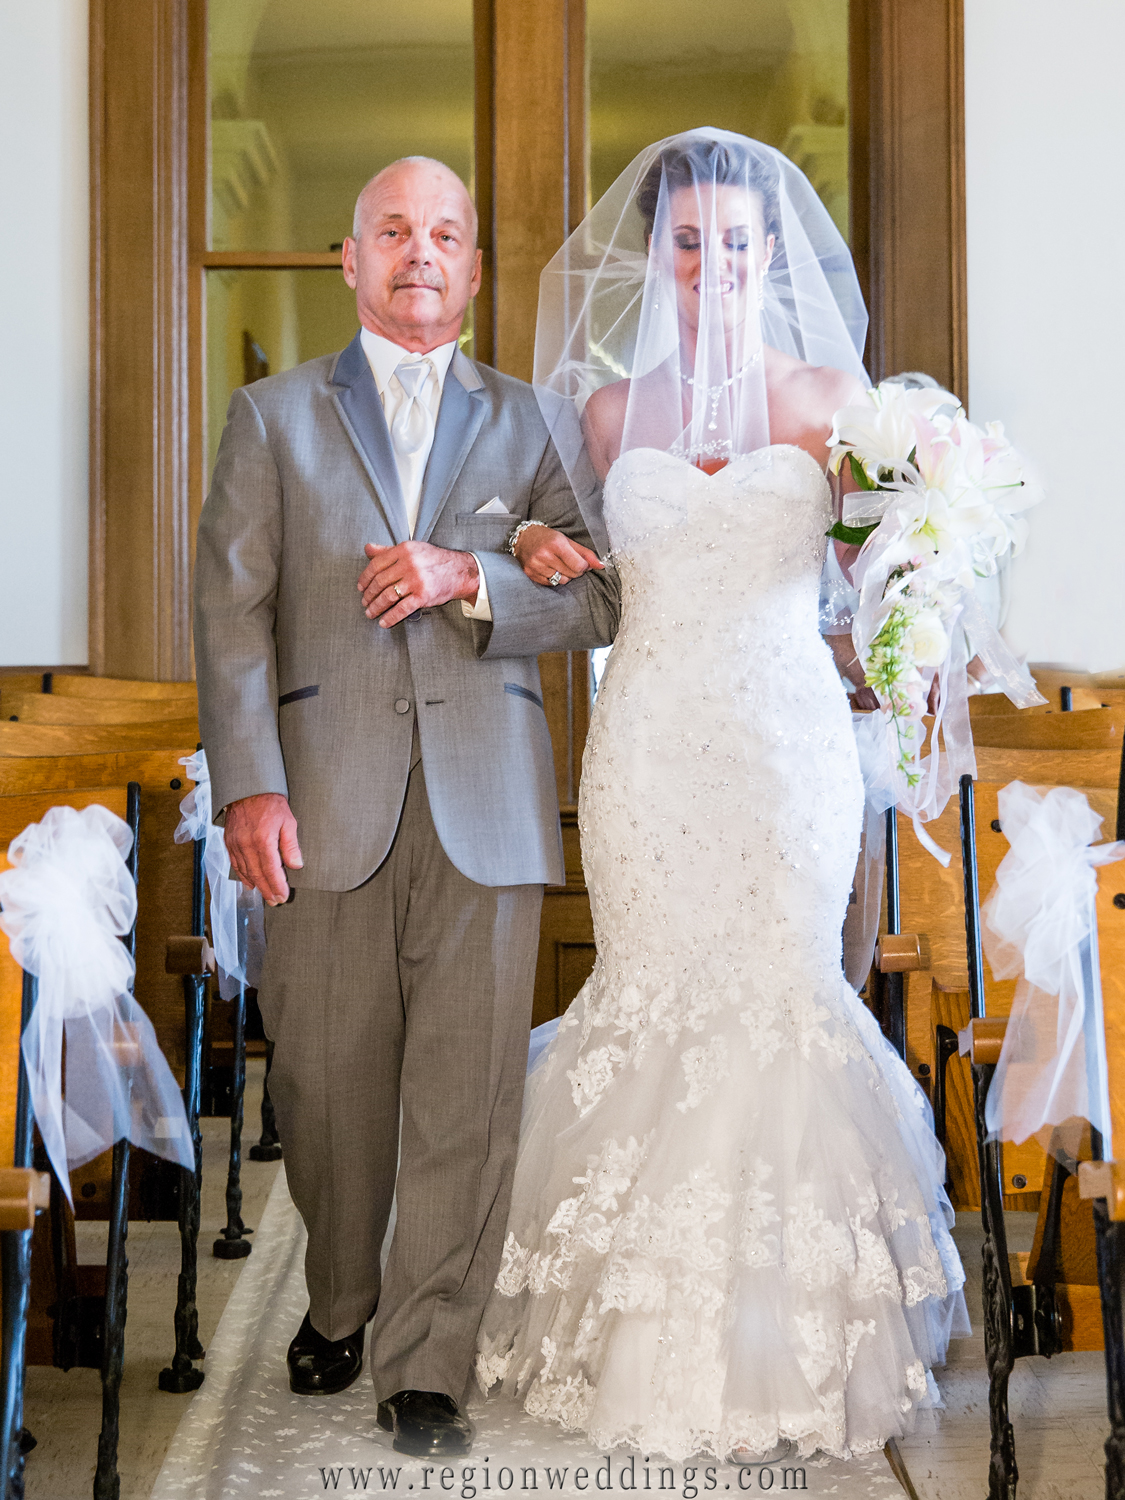 Father of the bride walks her down the aisle of the old Crown Point courthouse.